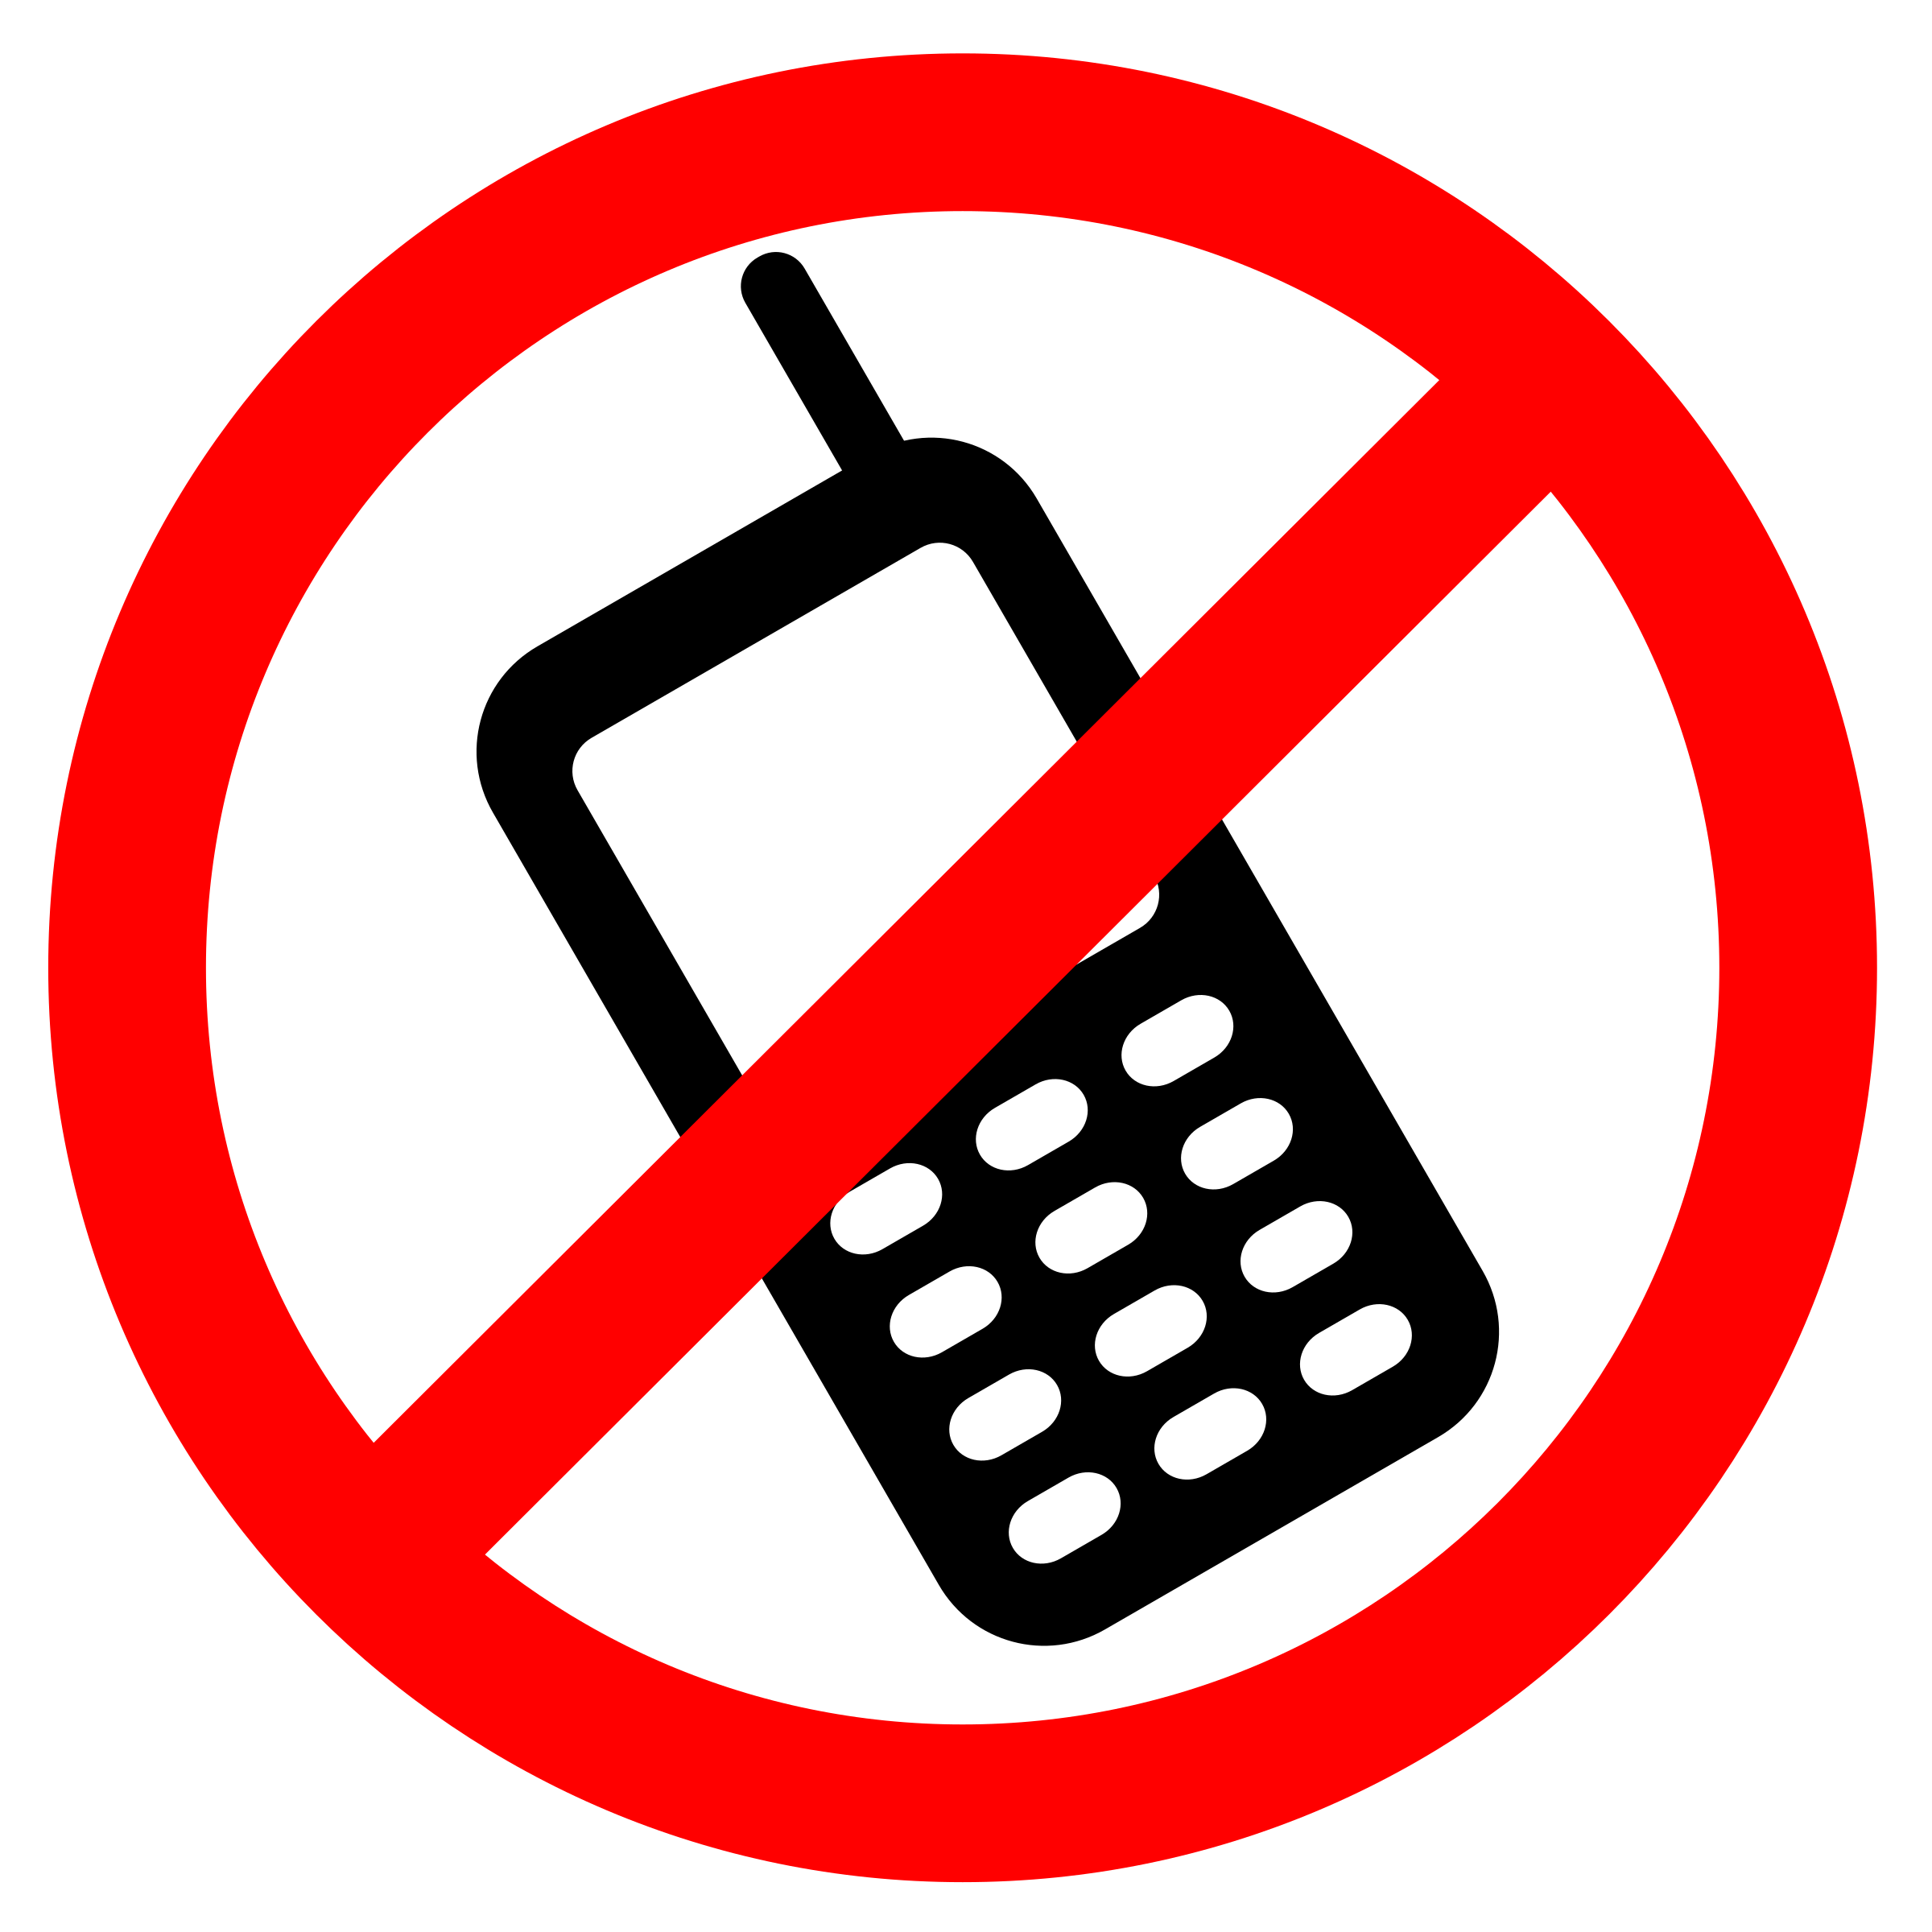 One day no phone. Driver clipart drive away